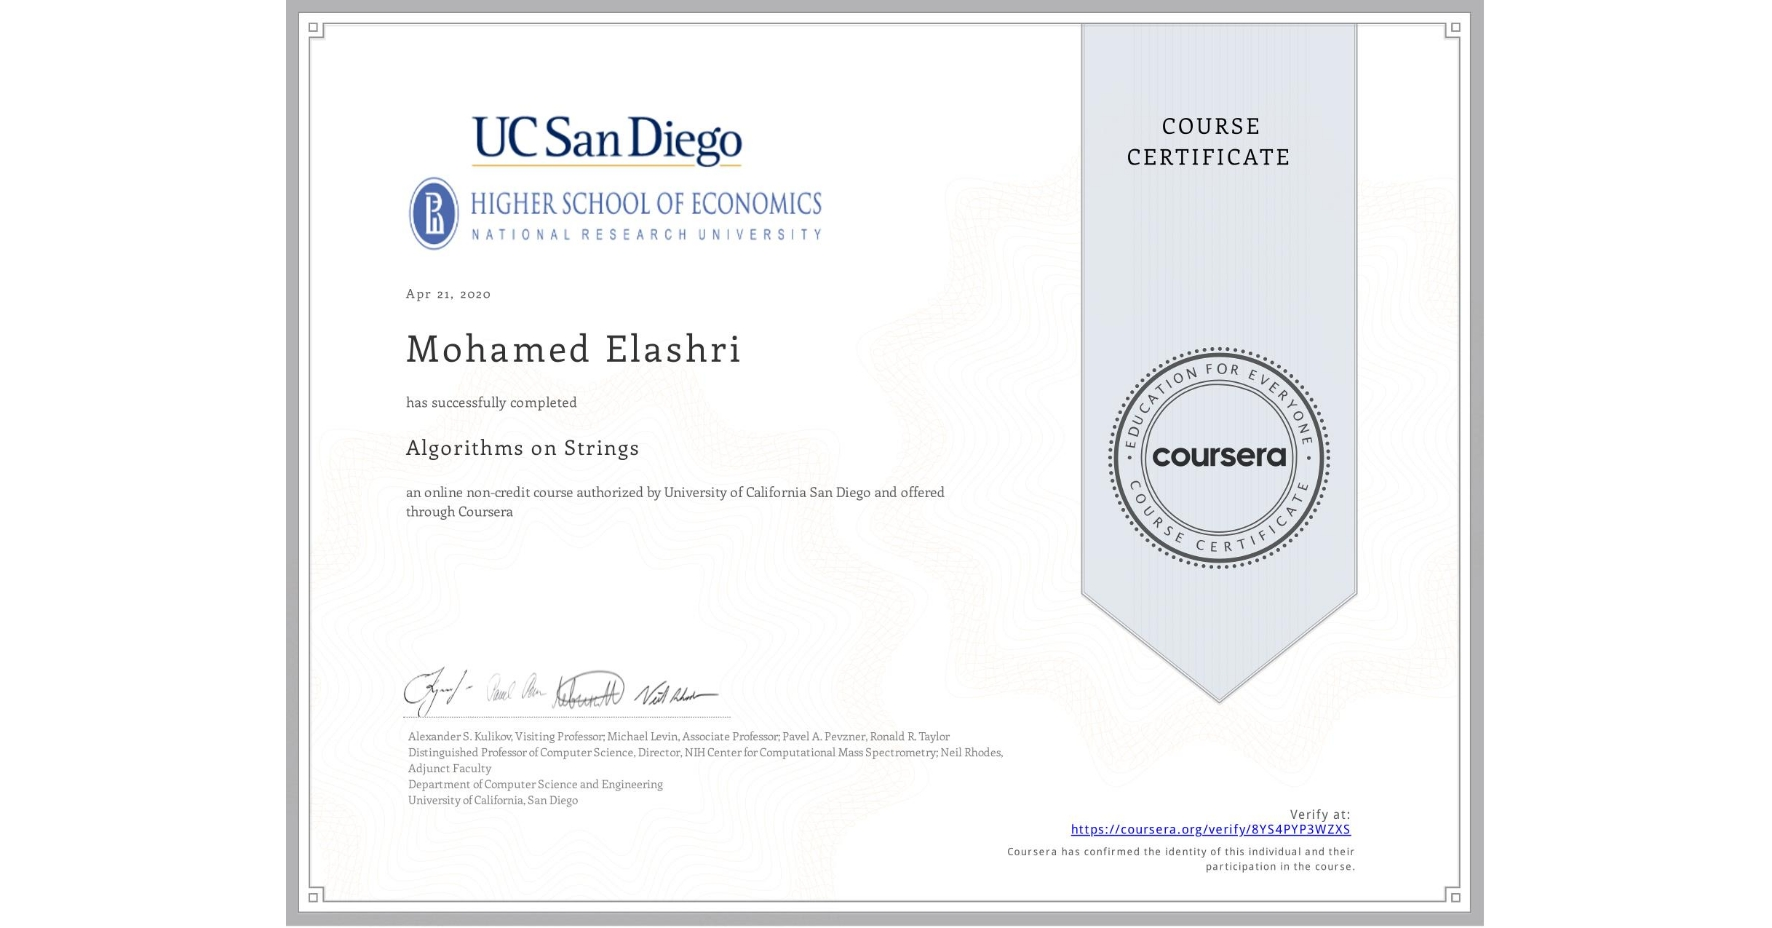 View certificate for Mohamed Elashri, Algorithms on Strings, an online non-credit course authorized by University of California San Diego & HSE University and offered through Coursera